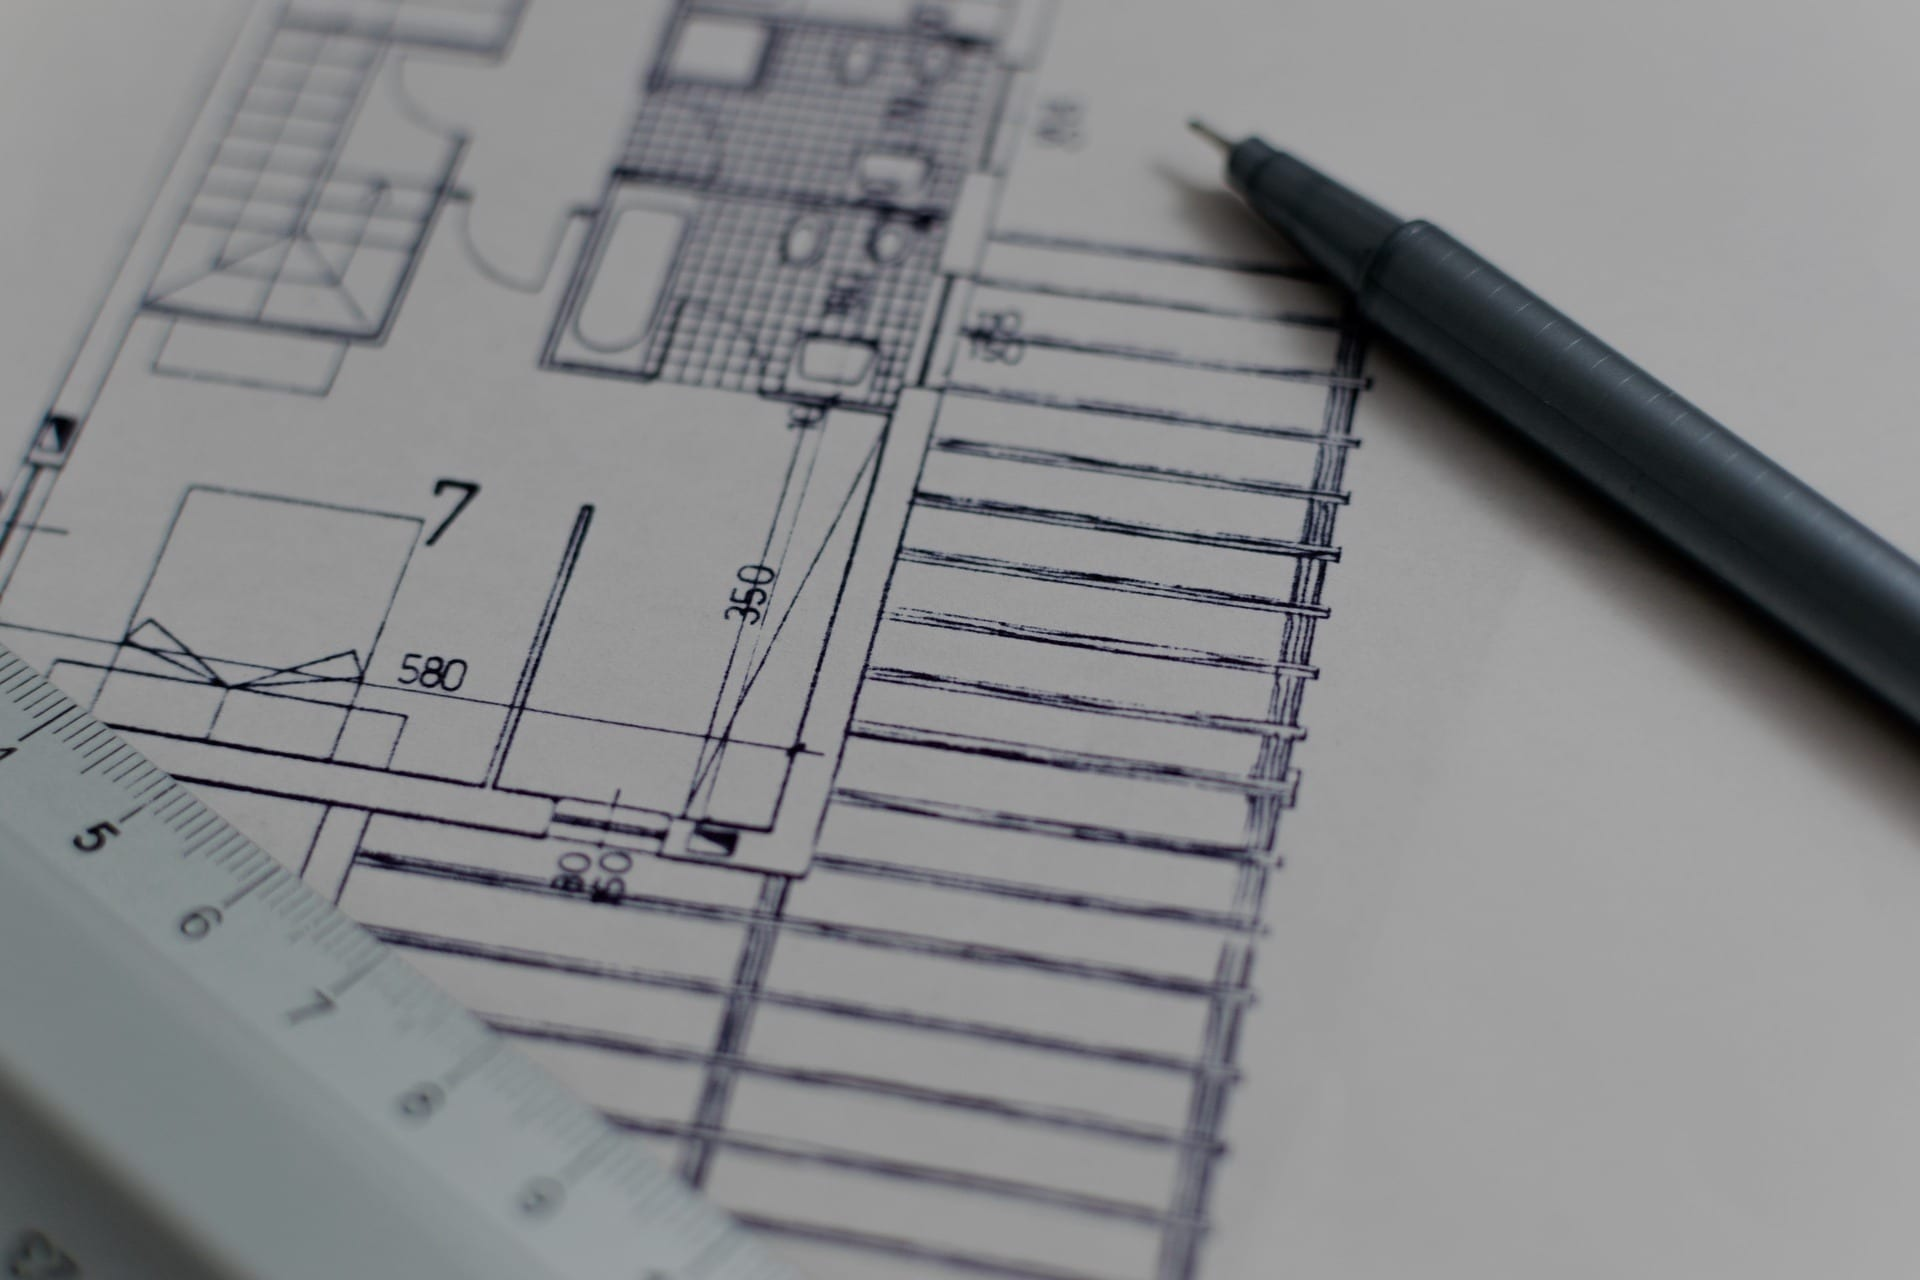 fire safety engineering architectural plans